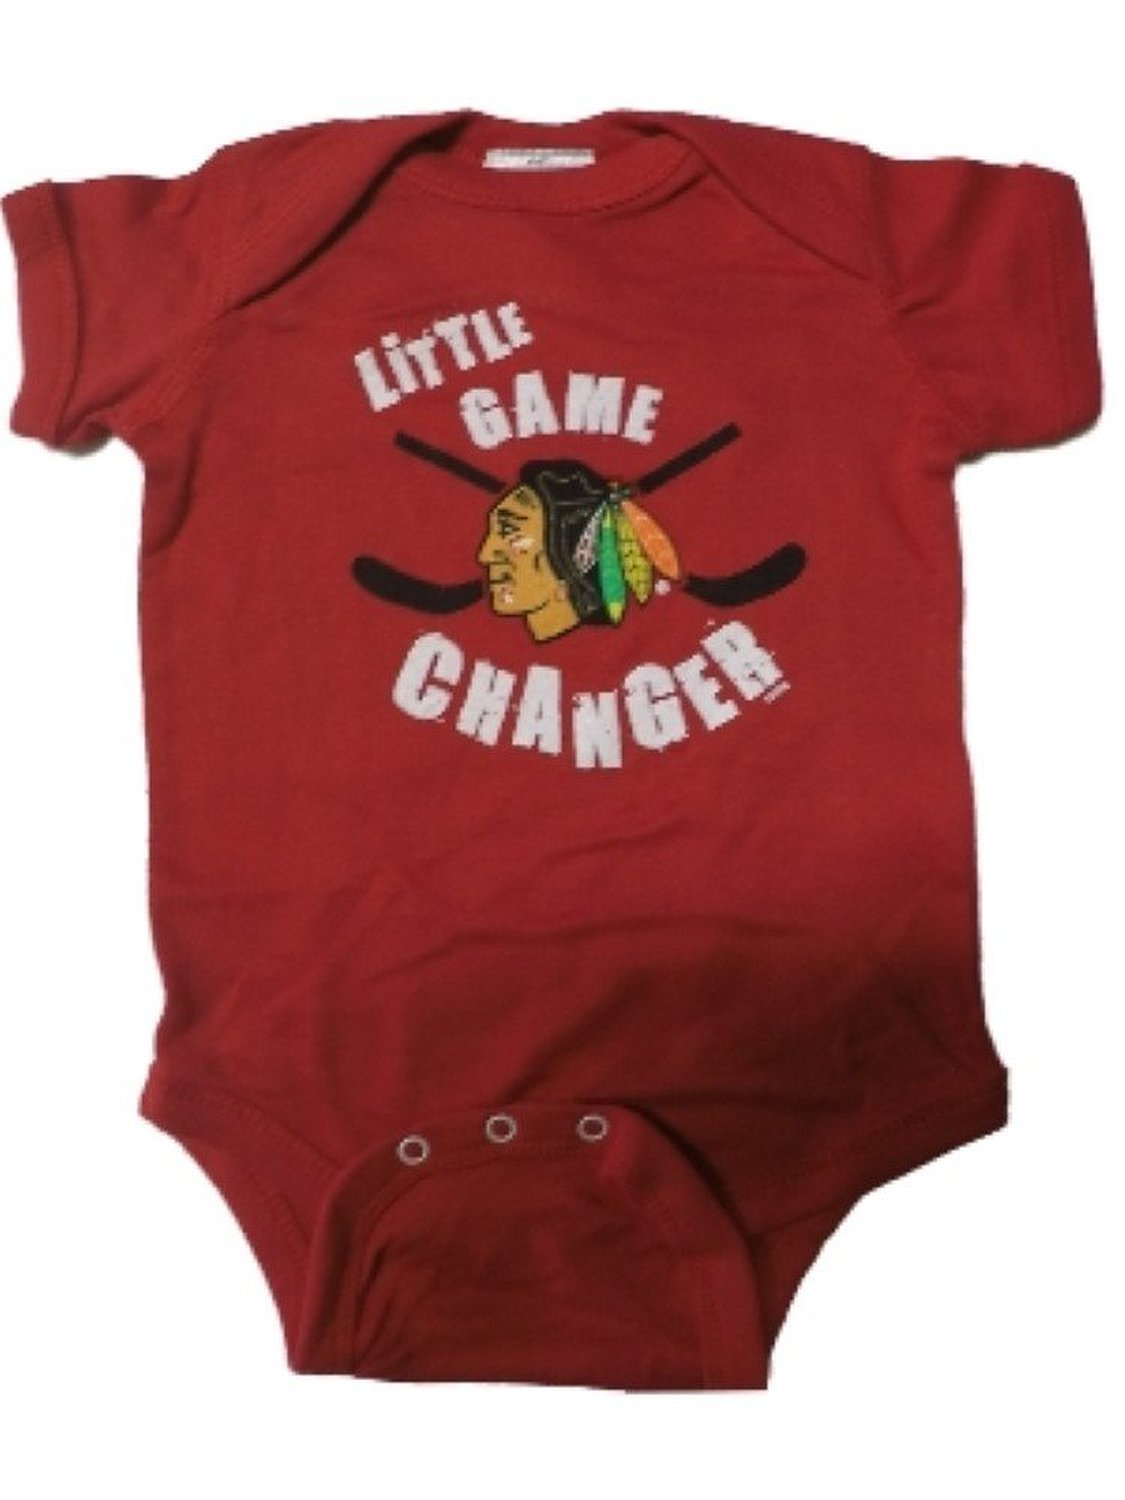 official photos 4224a 44772 Cheap Nhl Infant Apparel, find Nhl Infant Apparel deals on ...